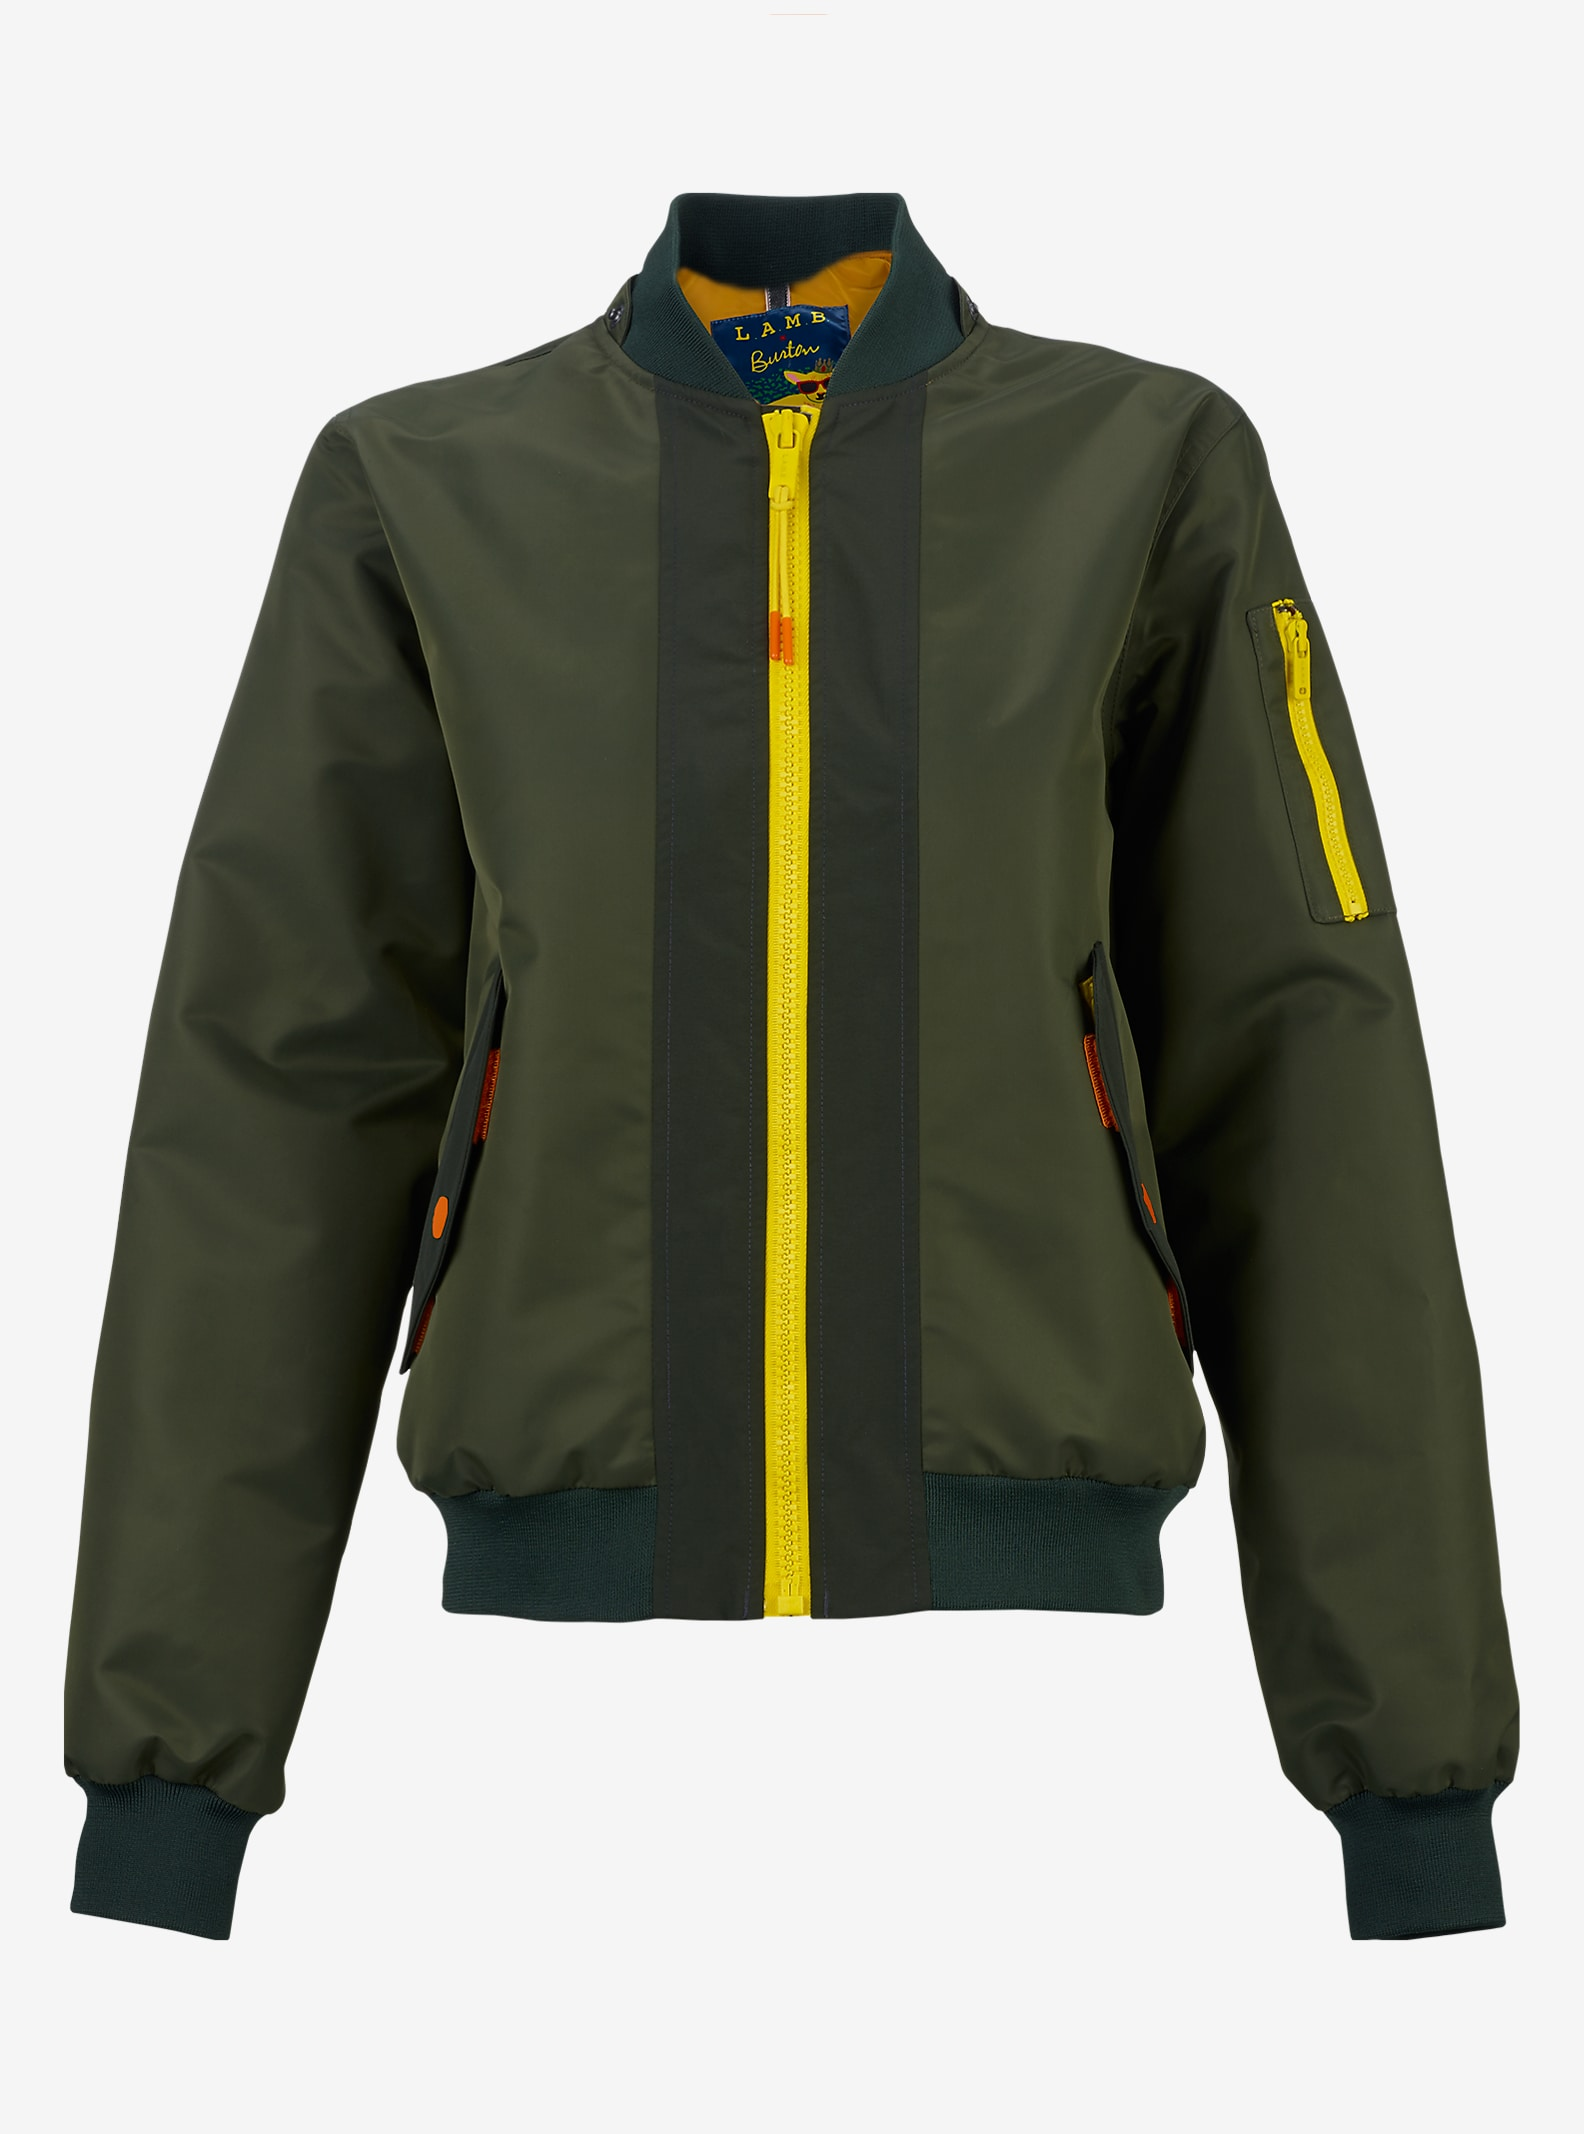 L.A.M.B. x Burton Cherry Bomberjacke angezeigt in Dusty Olive / Army Green